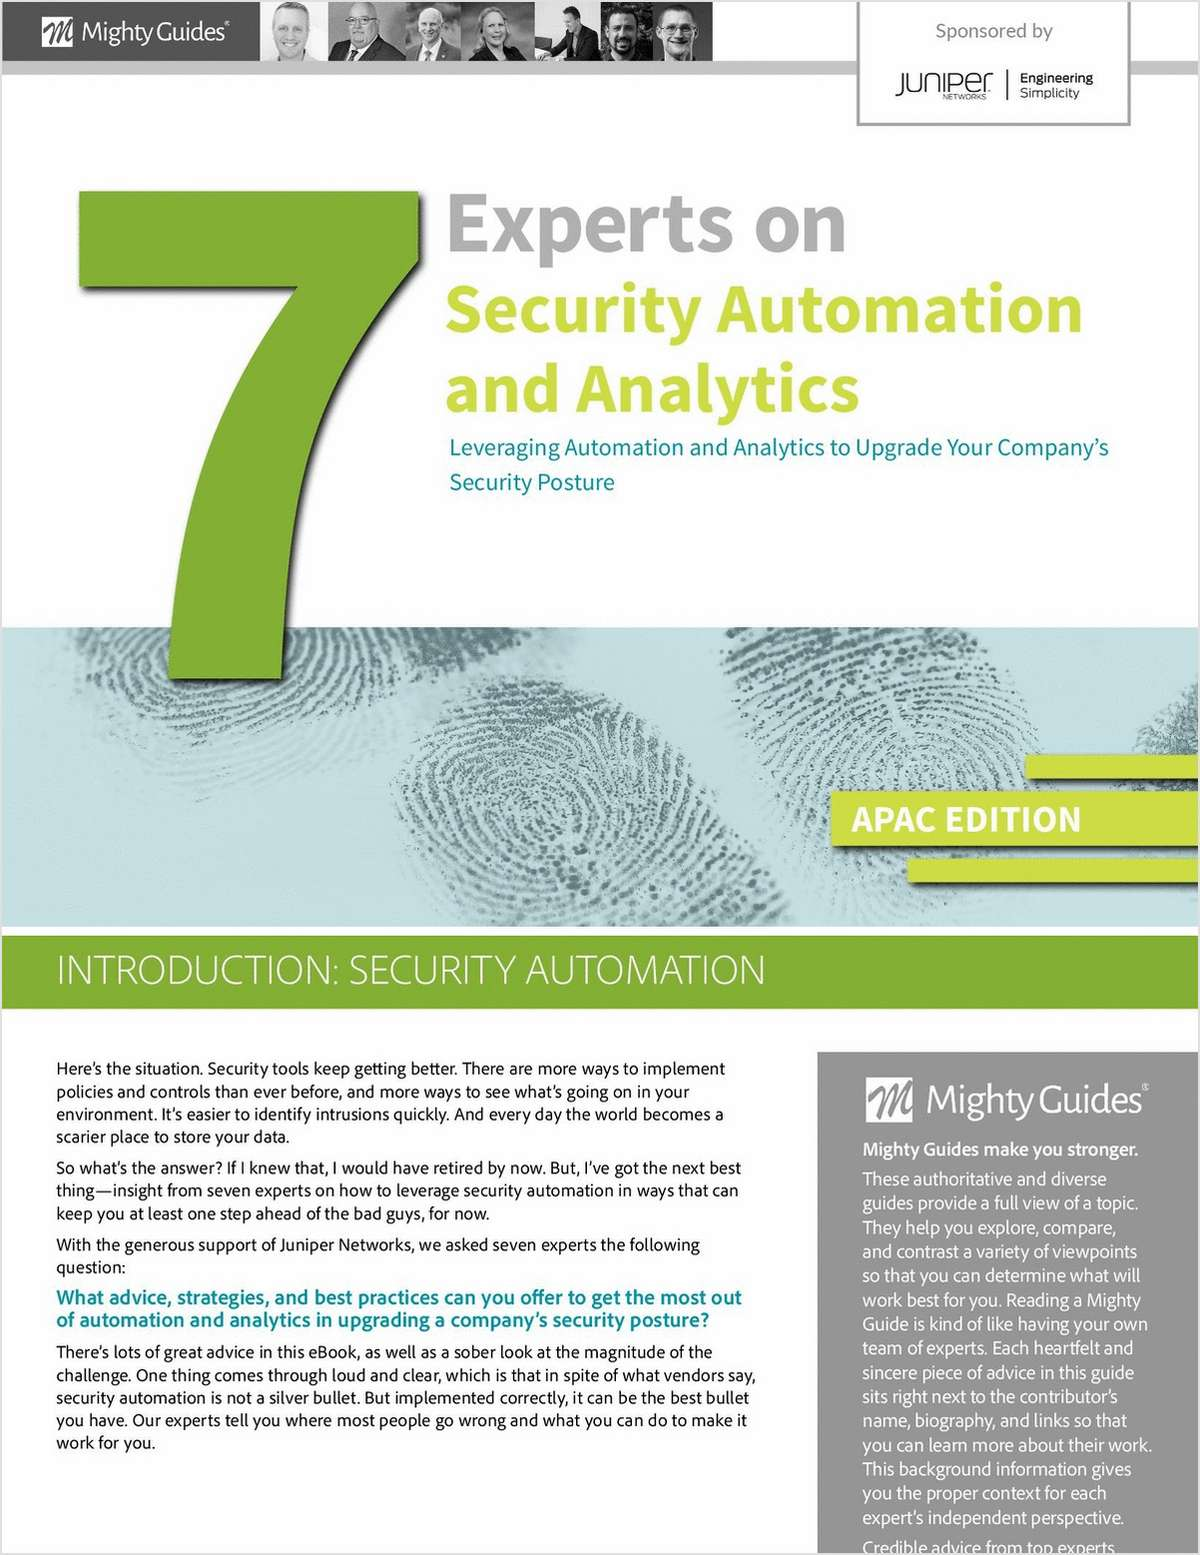 Security Automation & Analytics -- Advice from 7 Cybersecurity Experts